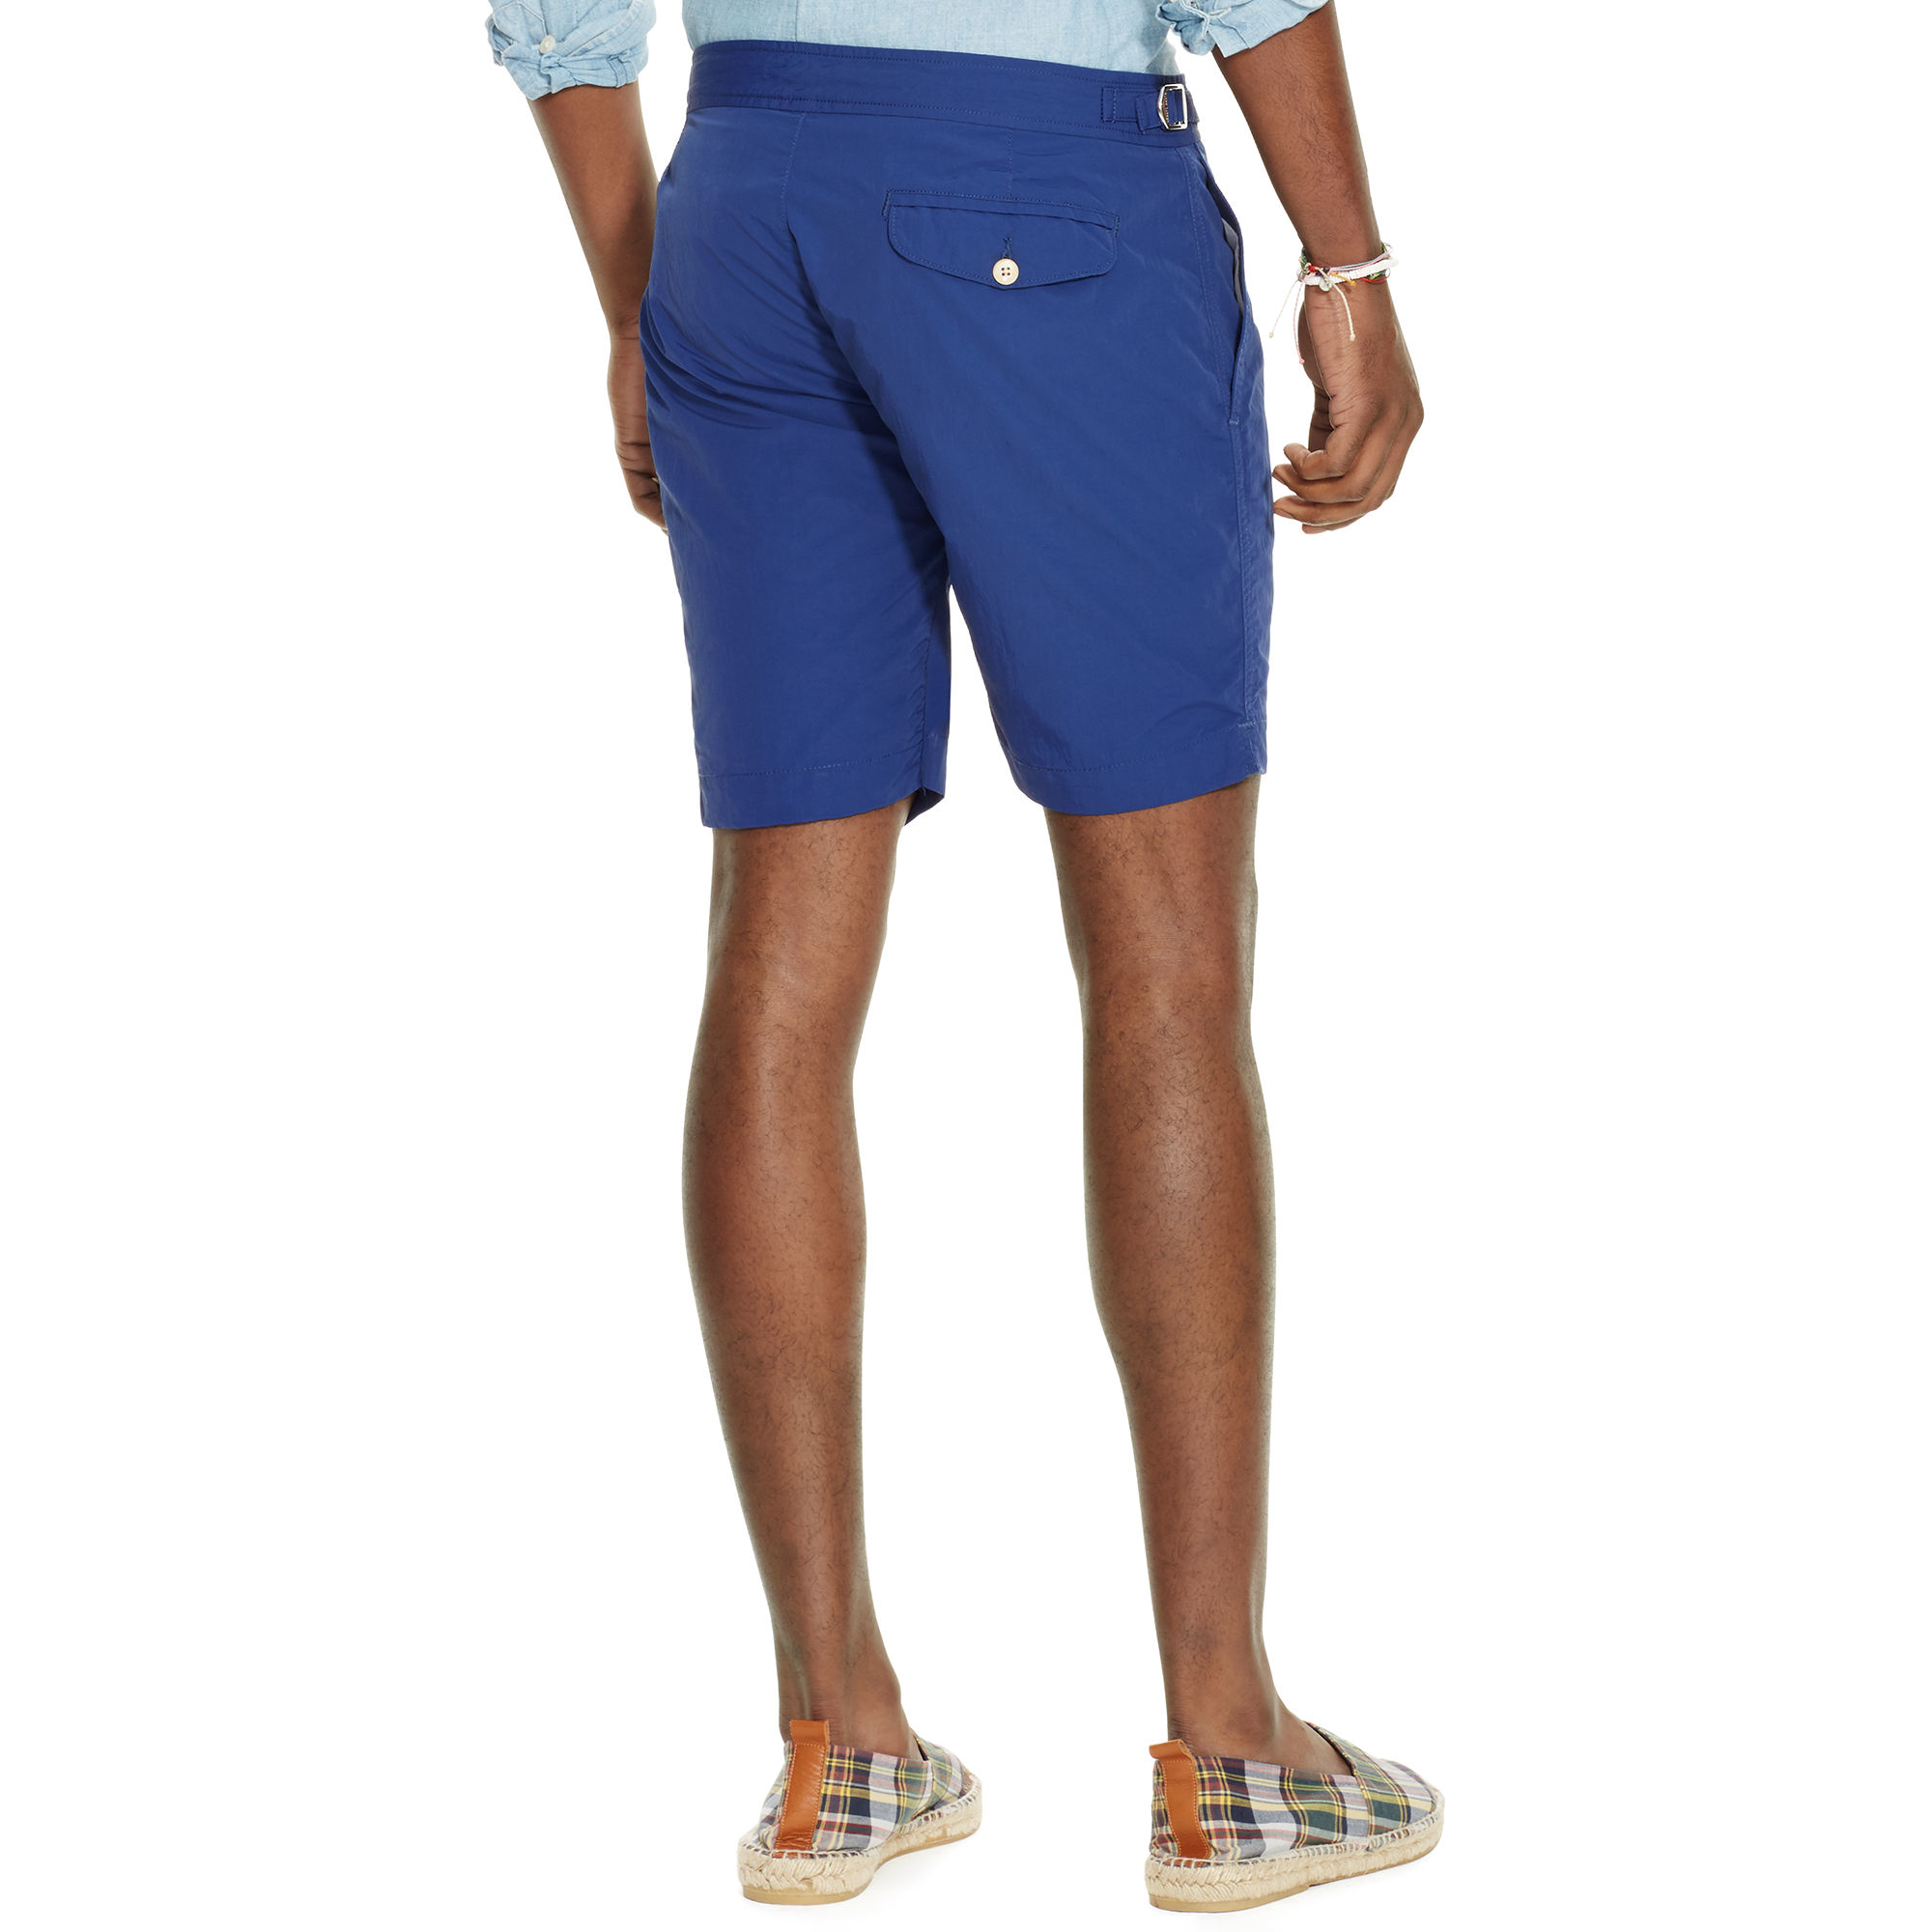 86fbb7f950 Polo Ralph Lauren 7-inch Monaco Solid Swim Trunk in Blue for Men - Lyst